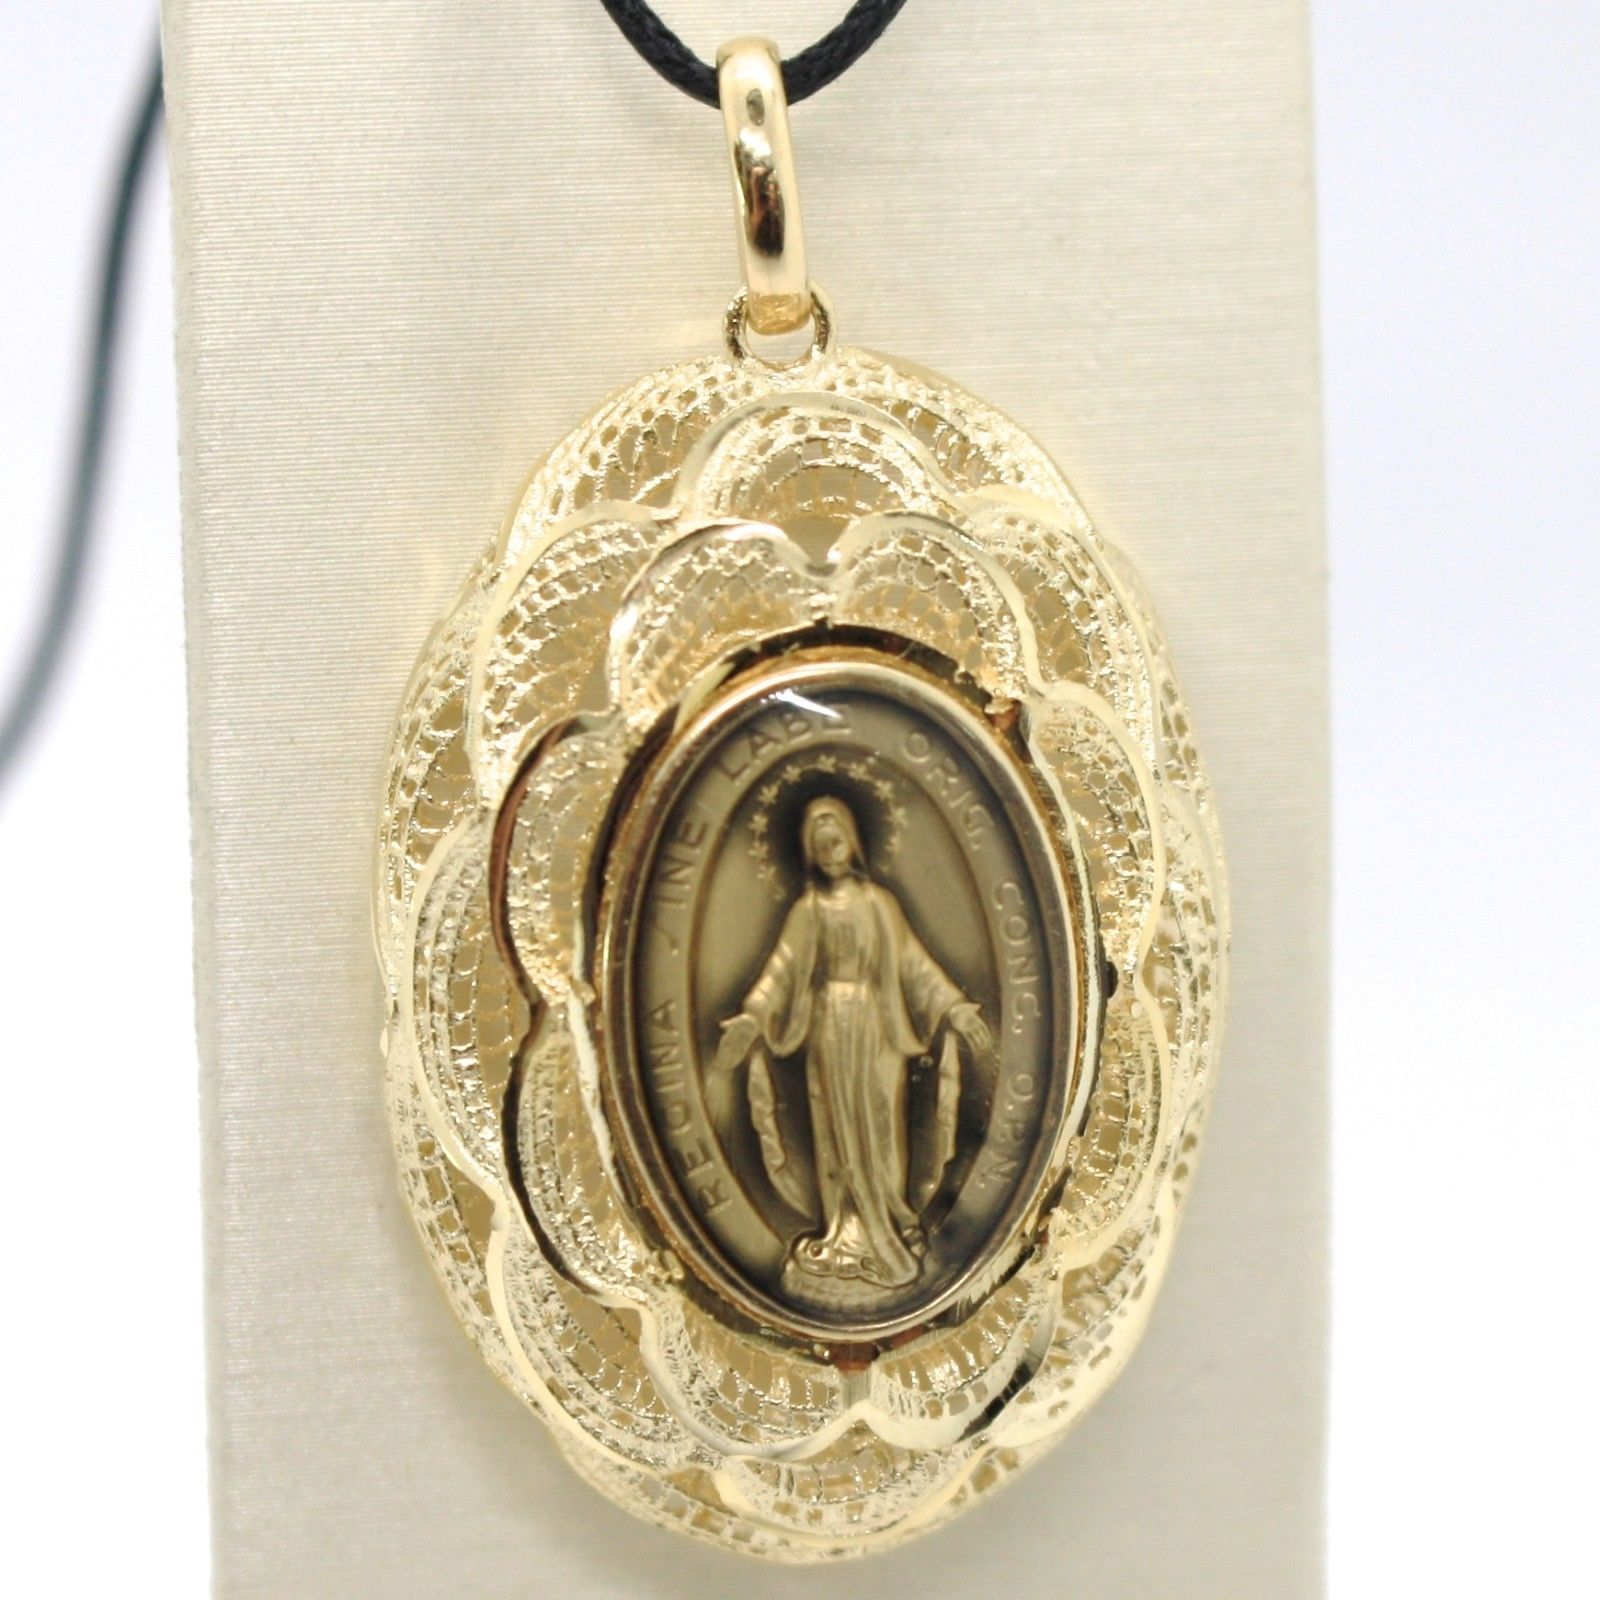 18K YELLOW GOLD BIG MIRACULOUS MEDAL, PENDANT VIRGIN MARY, MADONNA, FLORAL FRAME